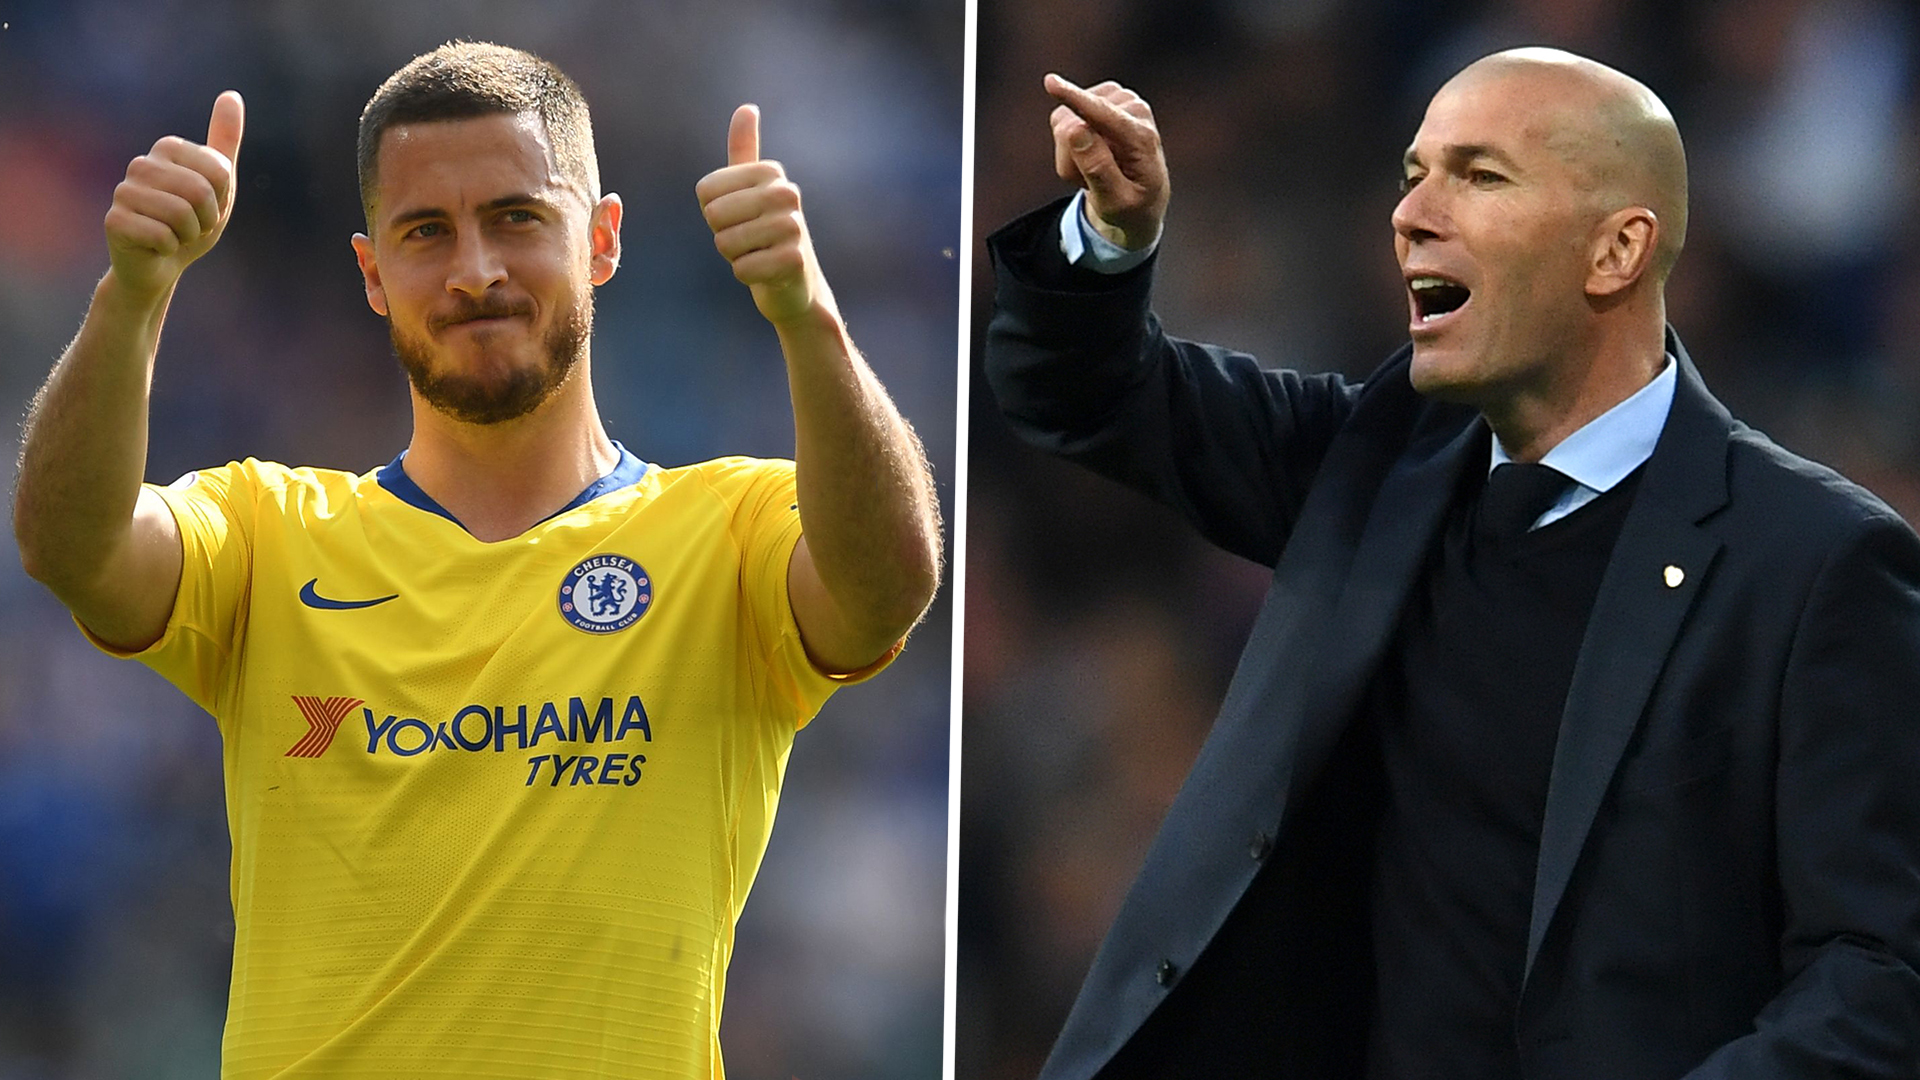 Eden Hazard's move to Real Madrid suffers setback over transfer fee